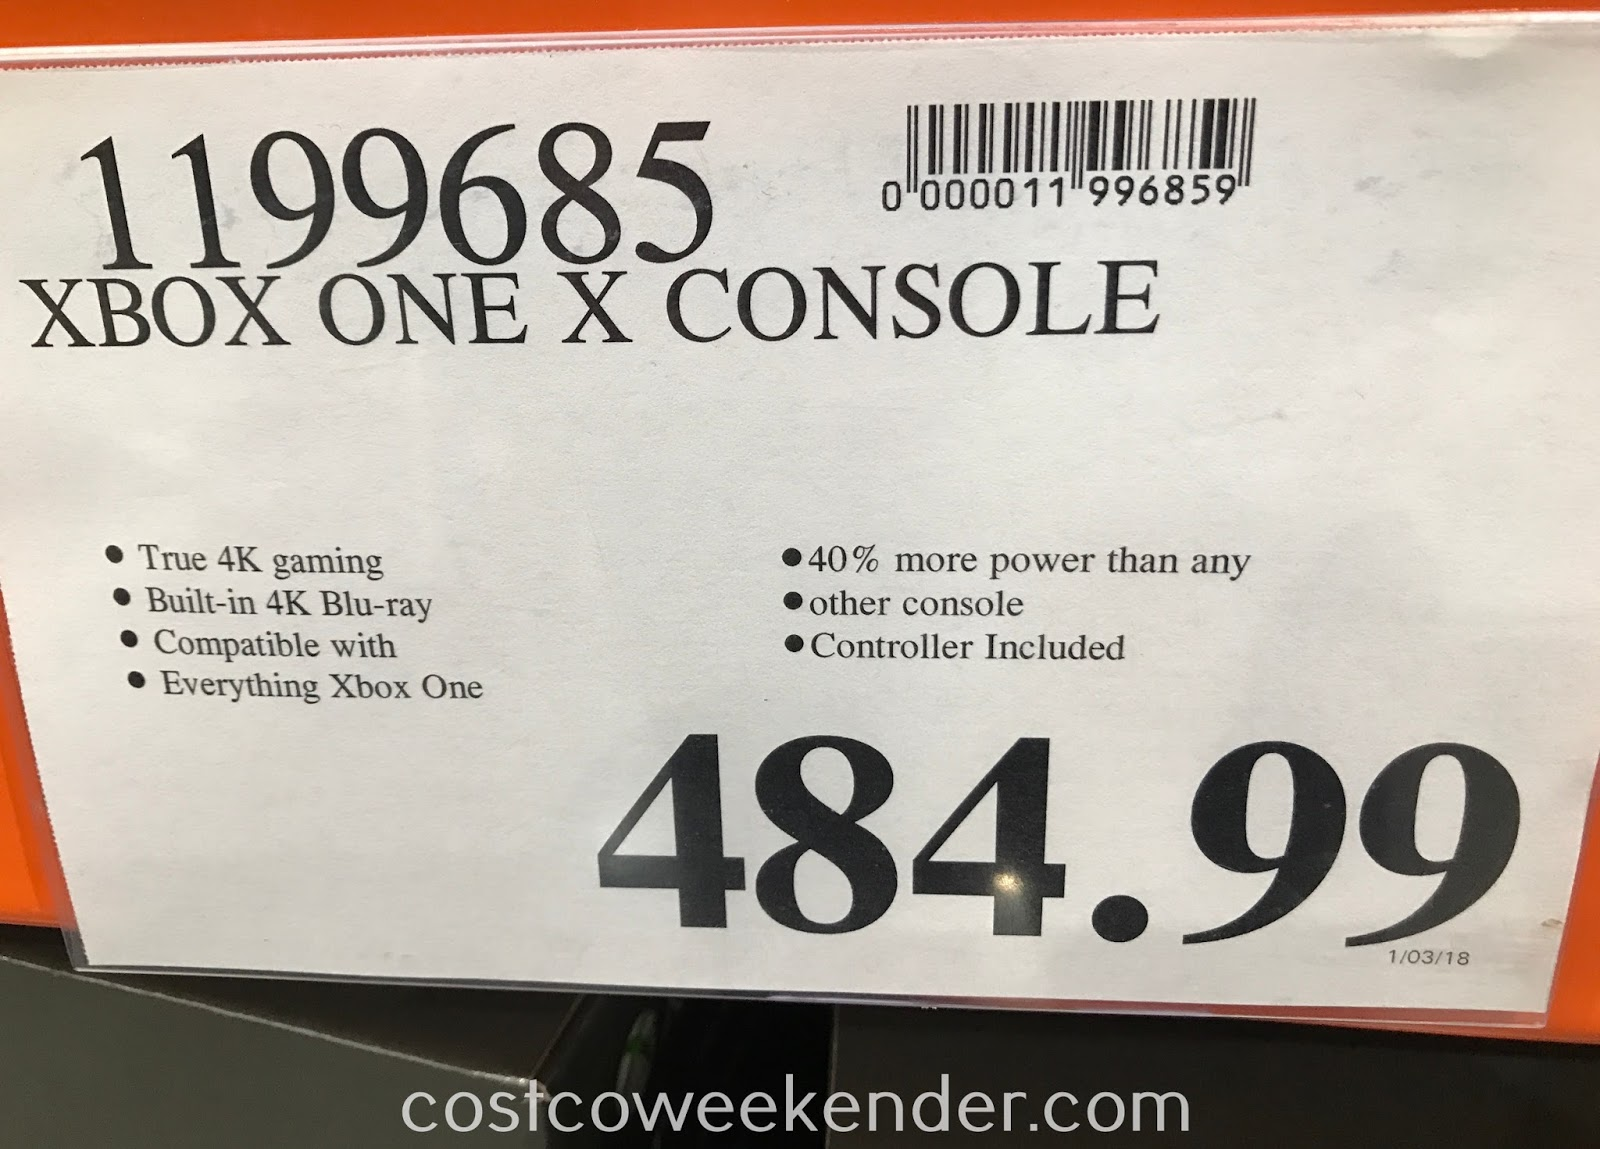 Deal for the Microsoft Xbox One X at Costco